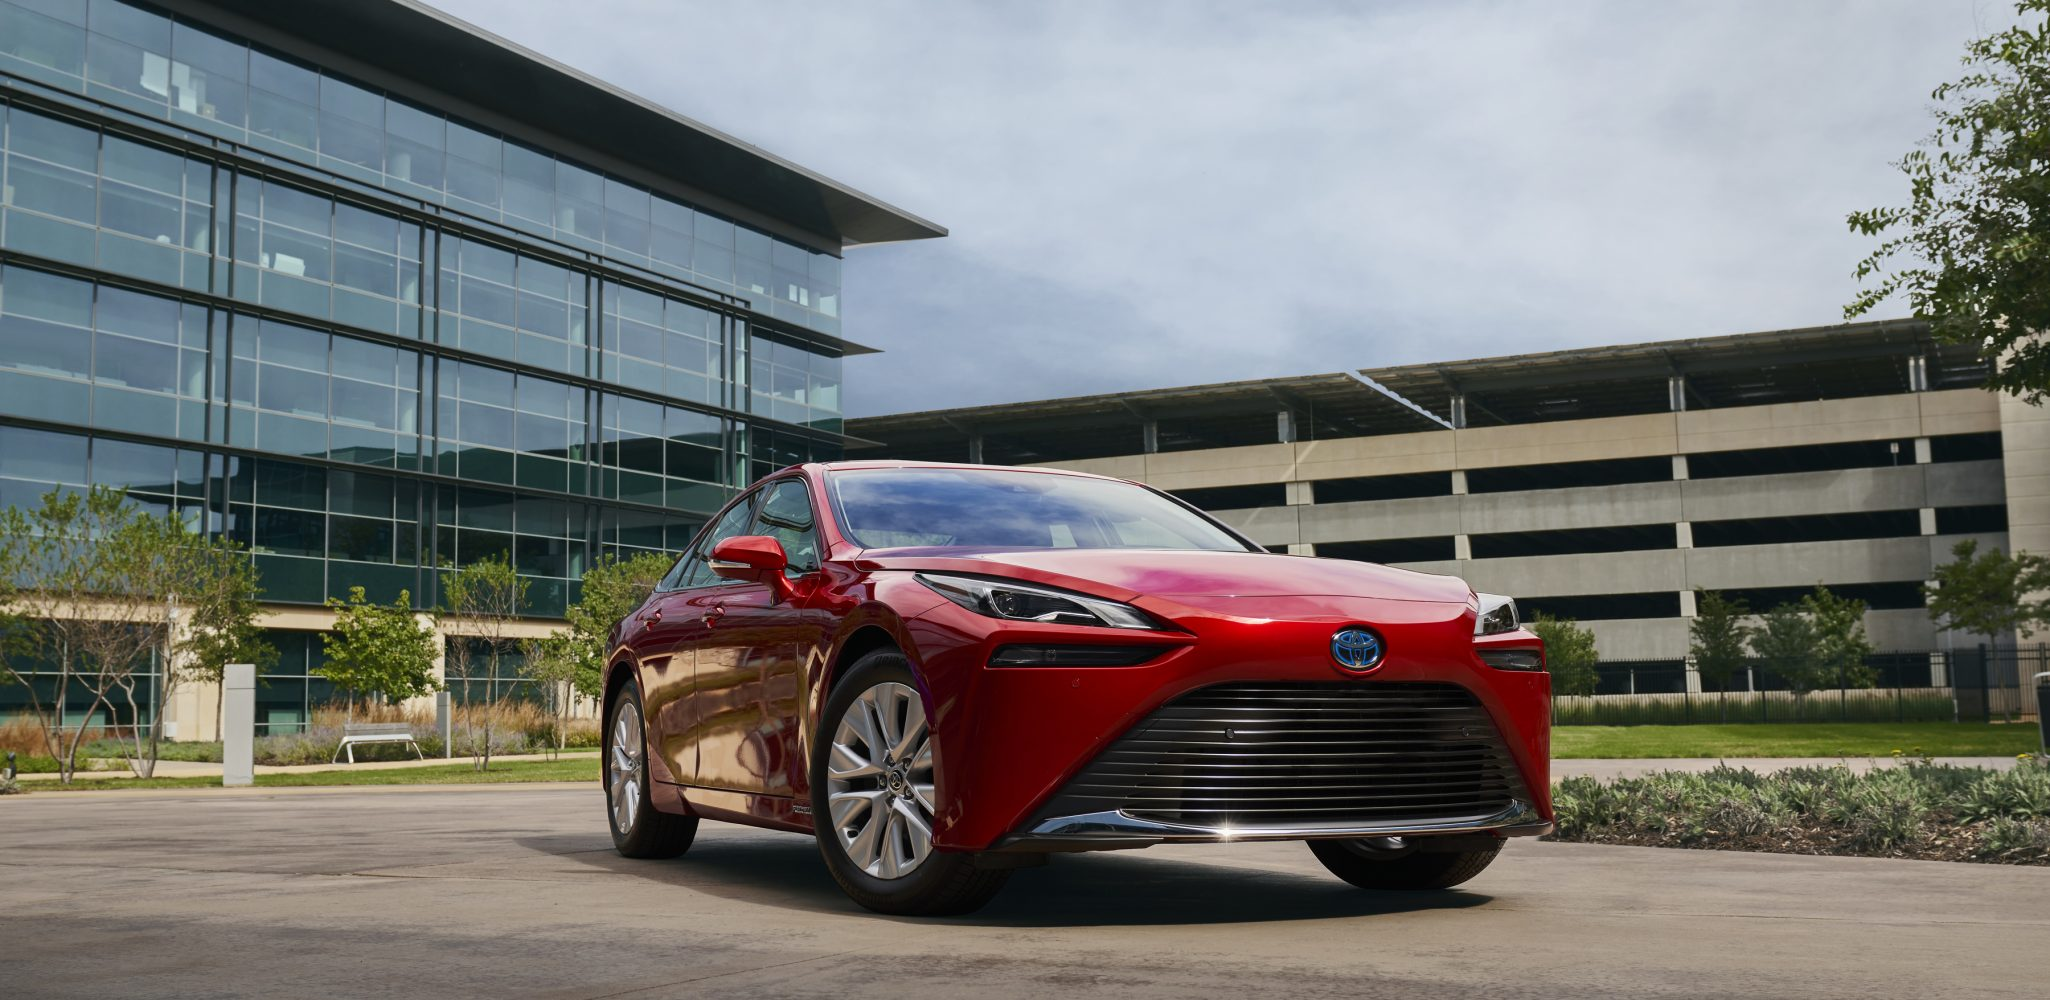 2021 Toyota Mirai Hits Dealerships in December with Cutting Edge Technology, Enhanced Safety and Multiple Grades